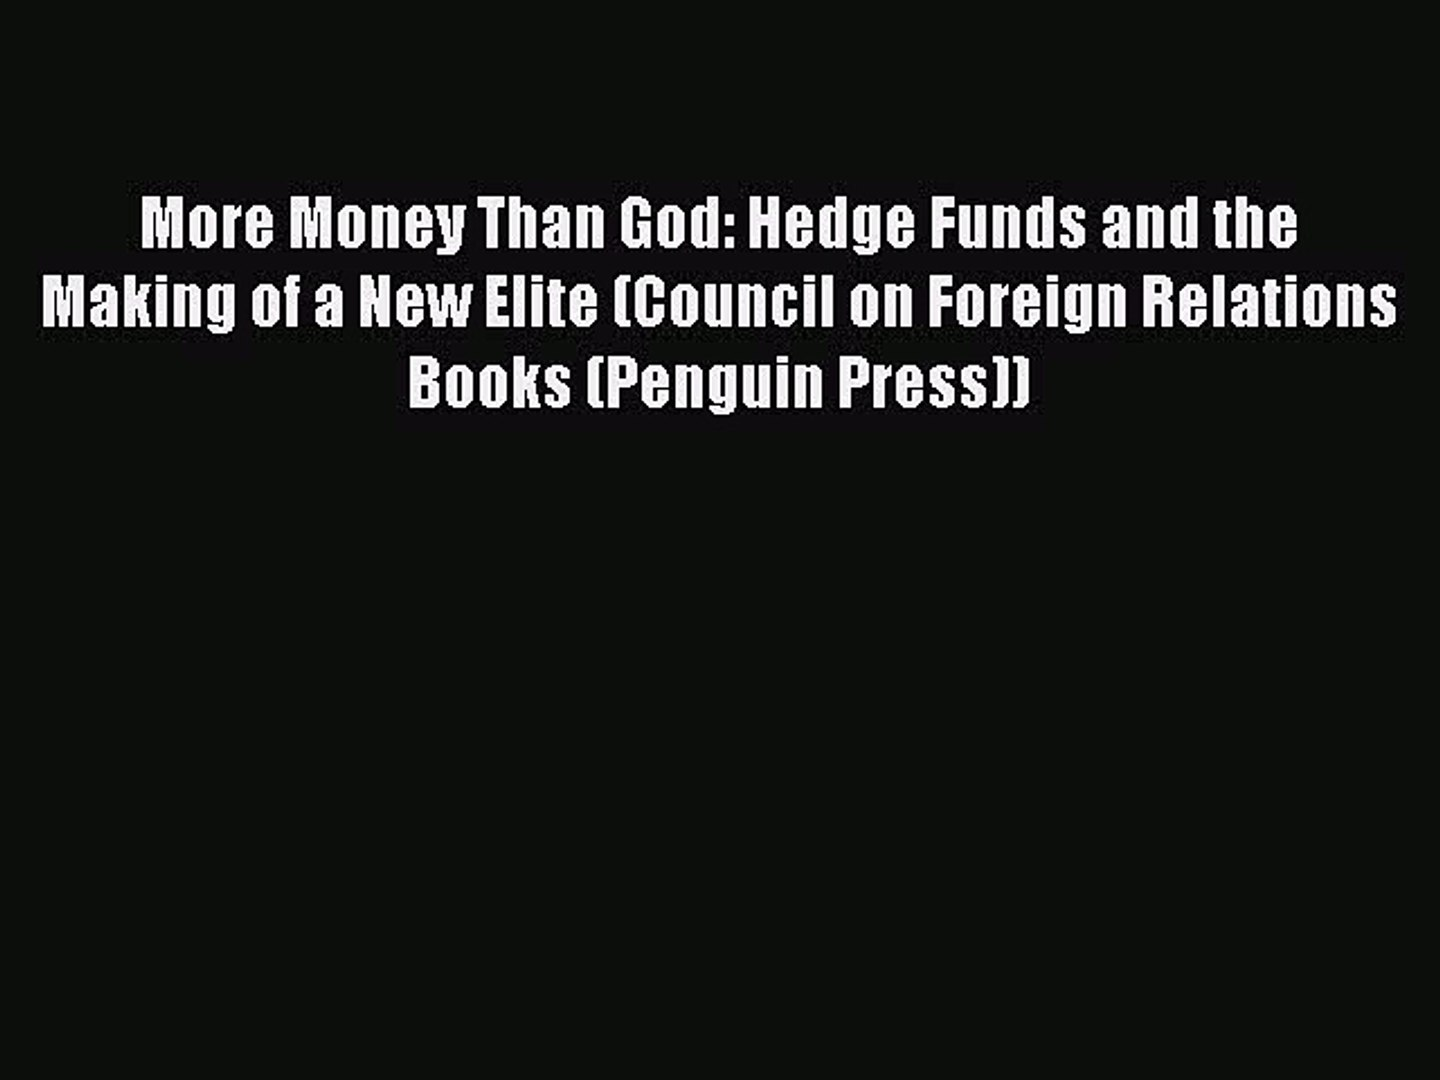 [PDF] More Money Than God: Hedge Funds and the Making of a New Elite  (Council on Foreign Relations